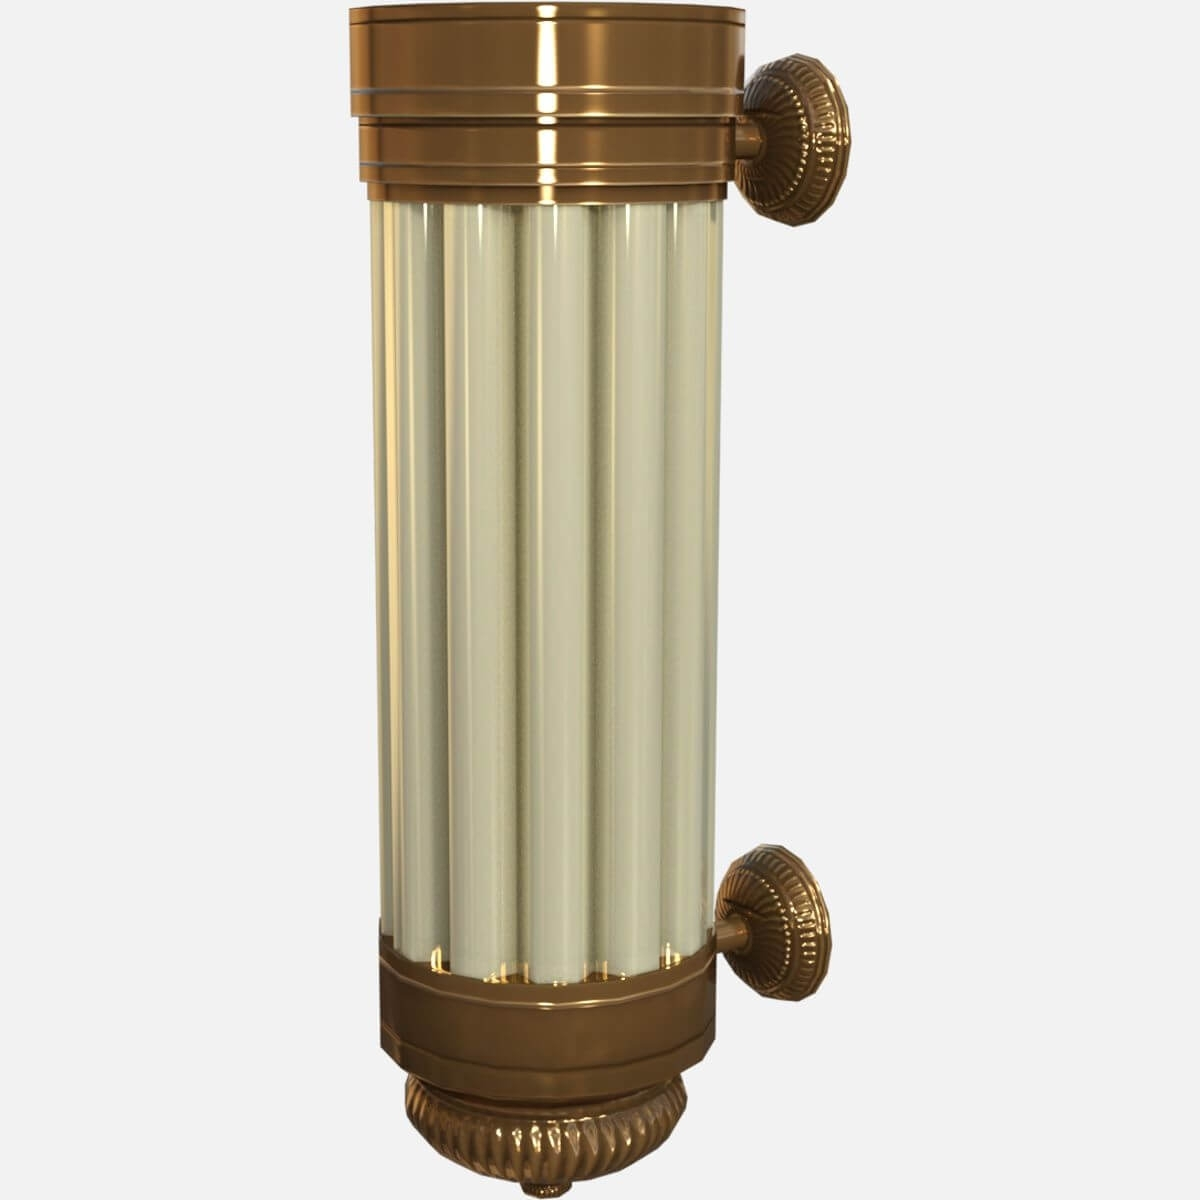 Art Deco Wall Sconce Light 3D Model Throughout Current Art Deco Wall Sconces (View 8 of 20)